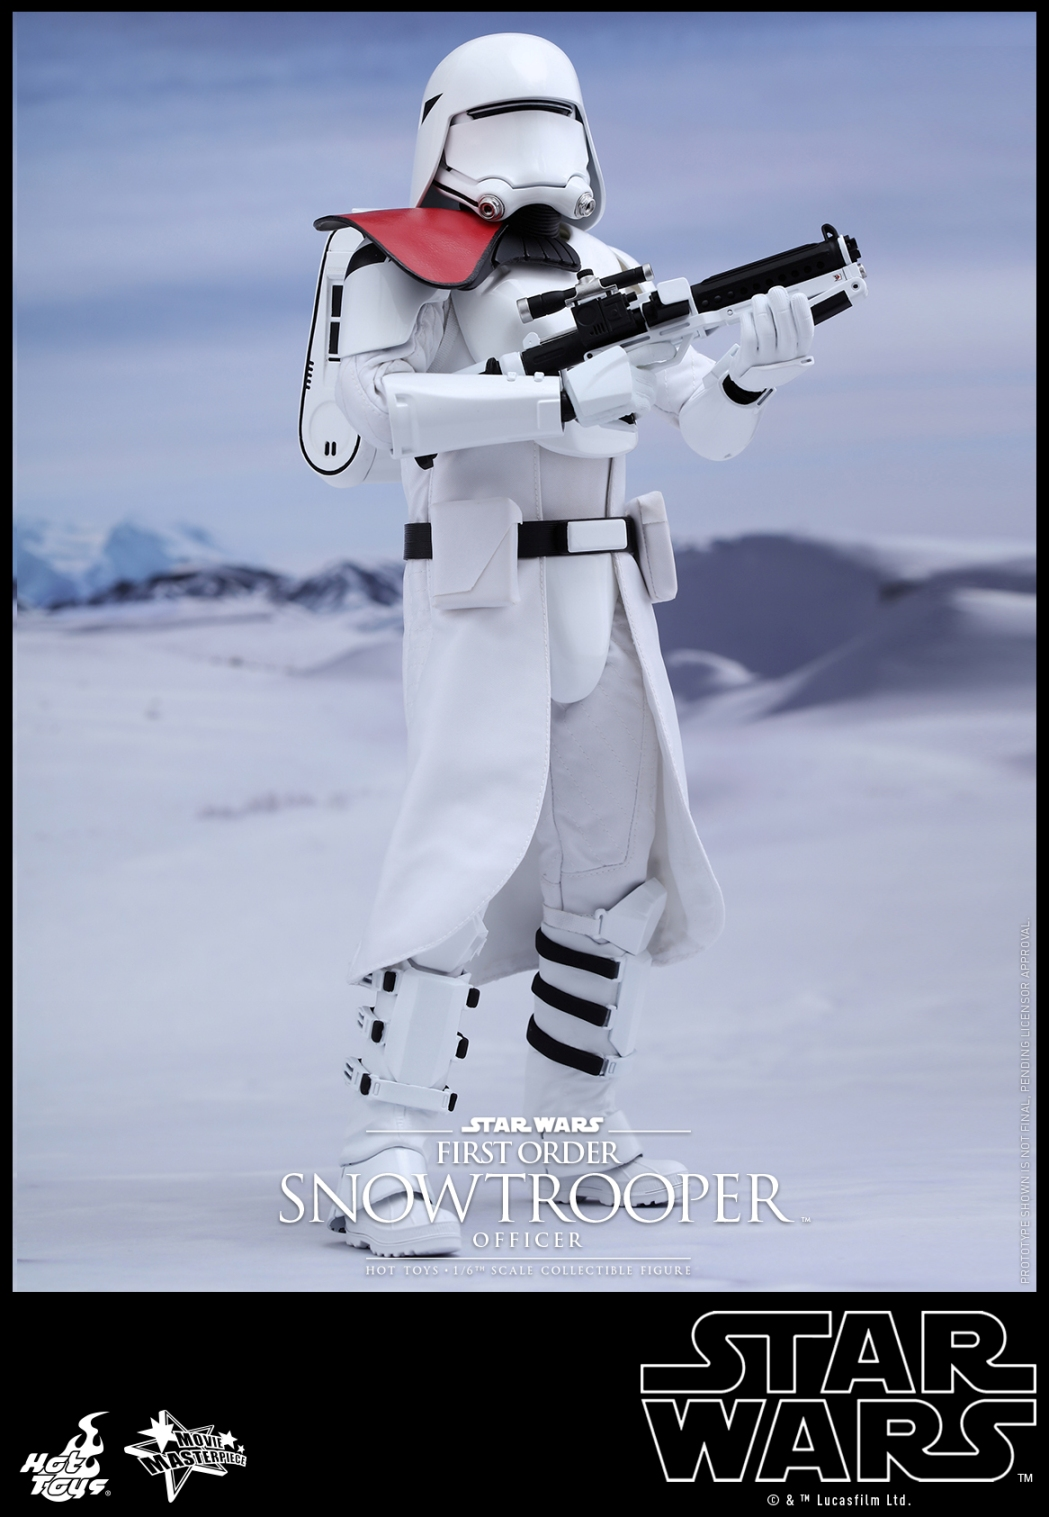 Hot Toys - Star Wars - The Force Awakens - The First Order Snowtrooper Officer Collectible Figure_PR2